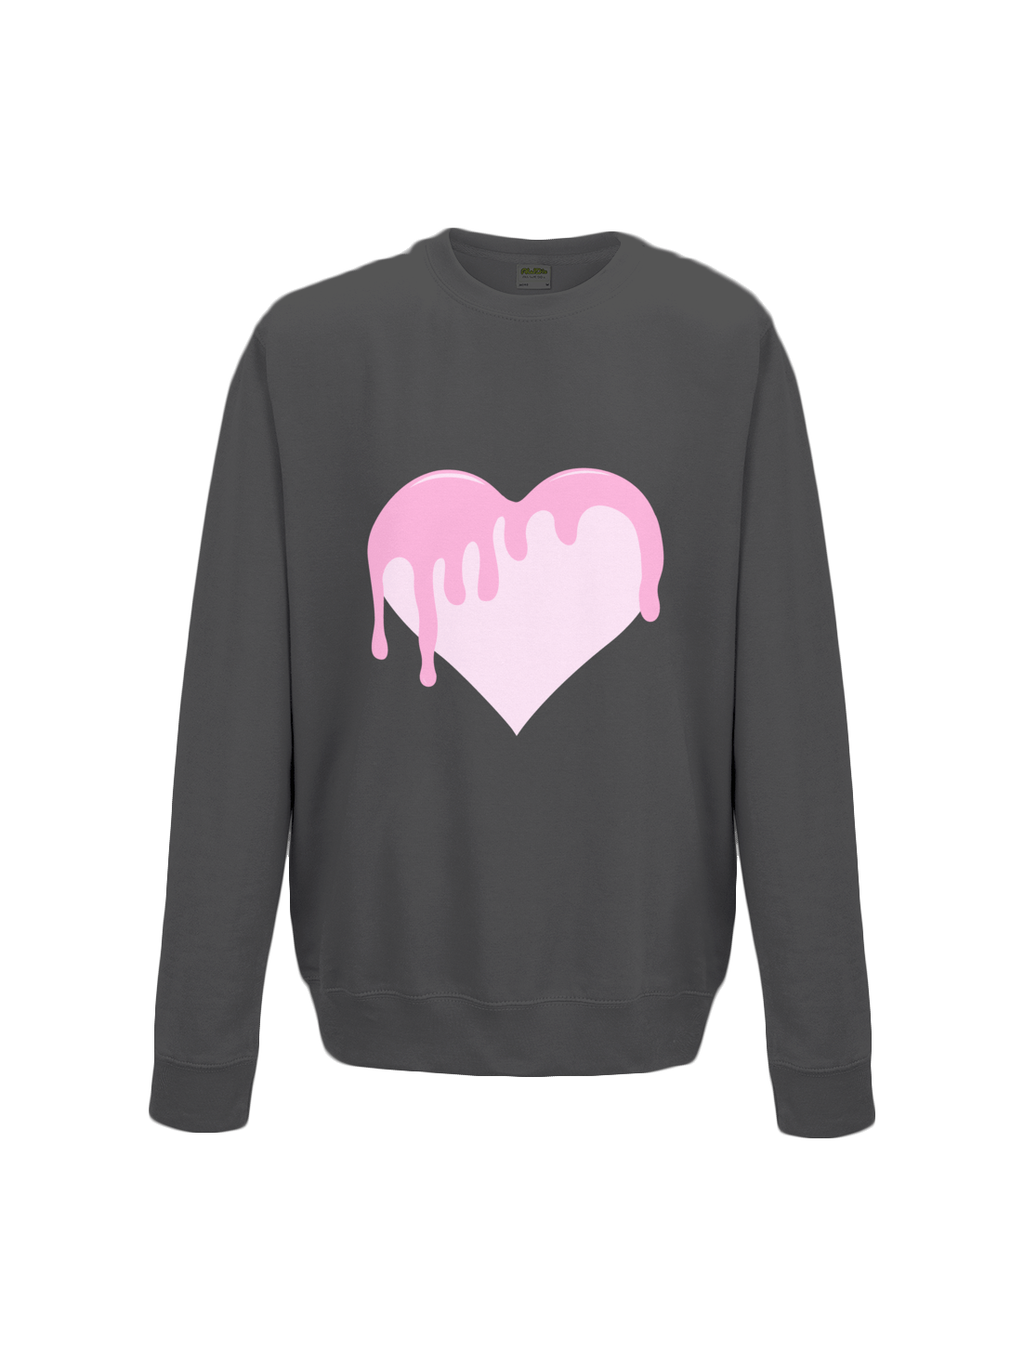 BLEEDING LOVE sweatshirt in black